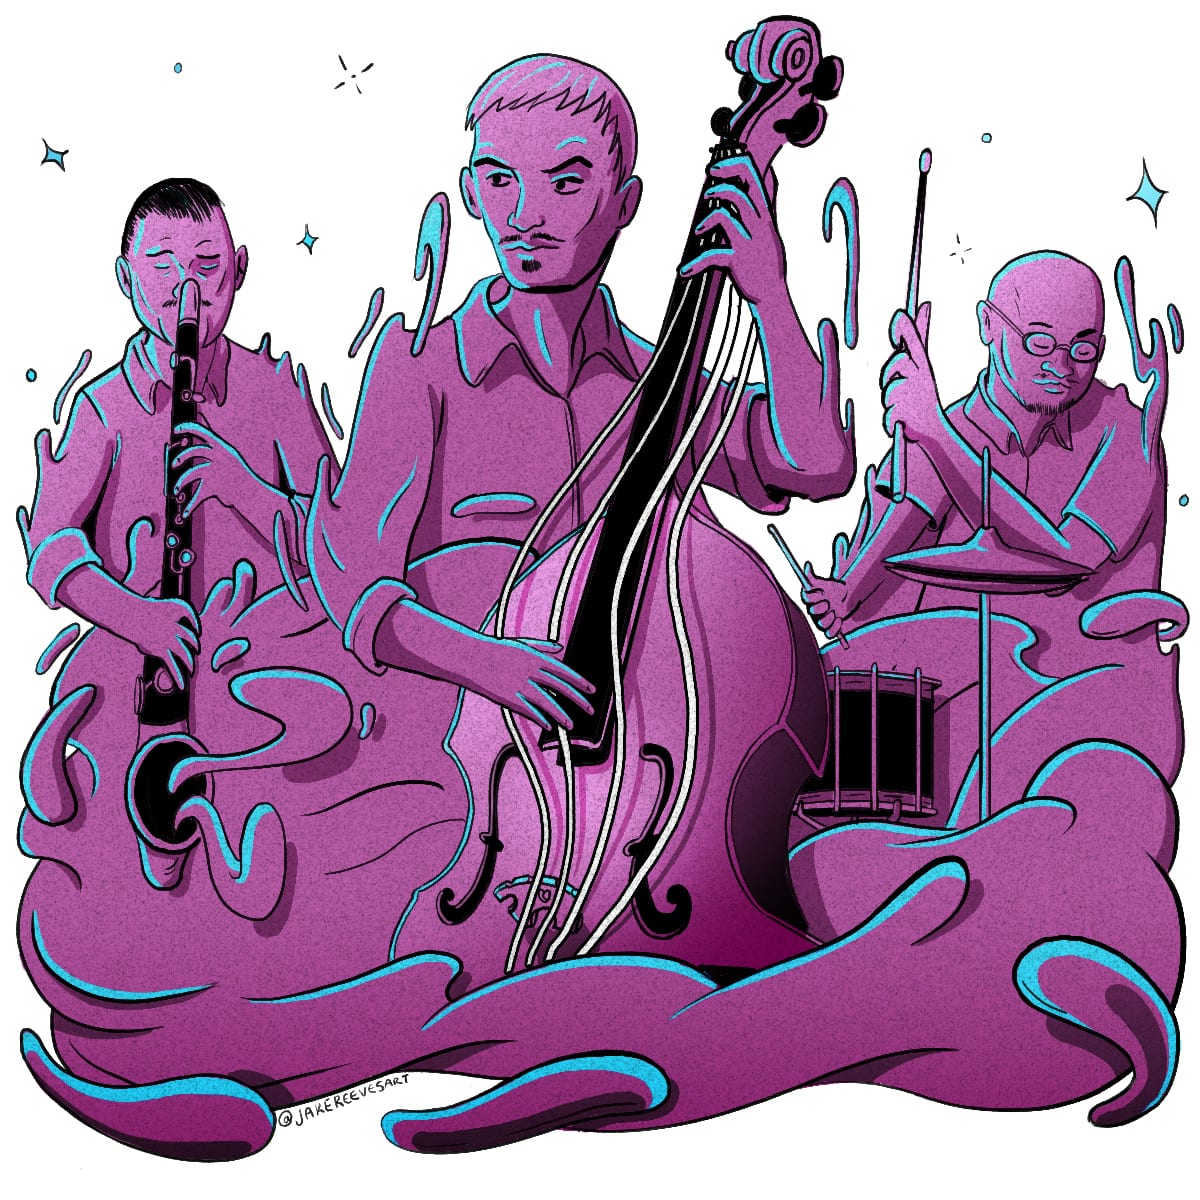 Illustration by Jake Reeves for CapitalBop